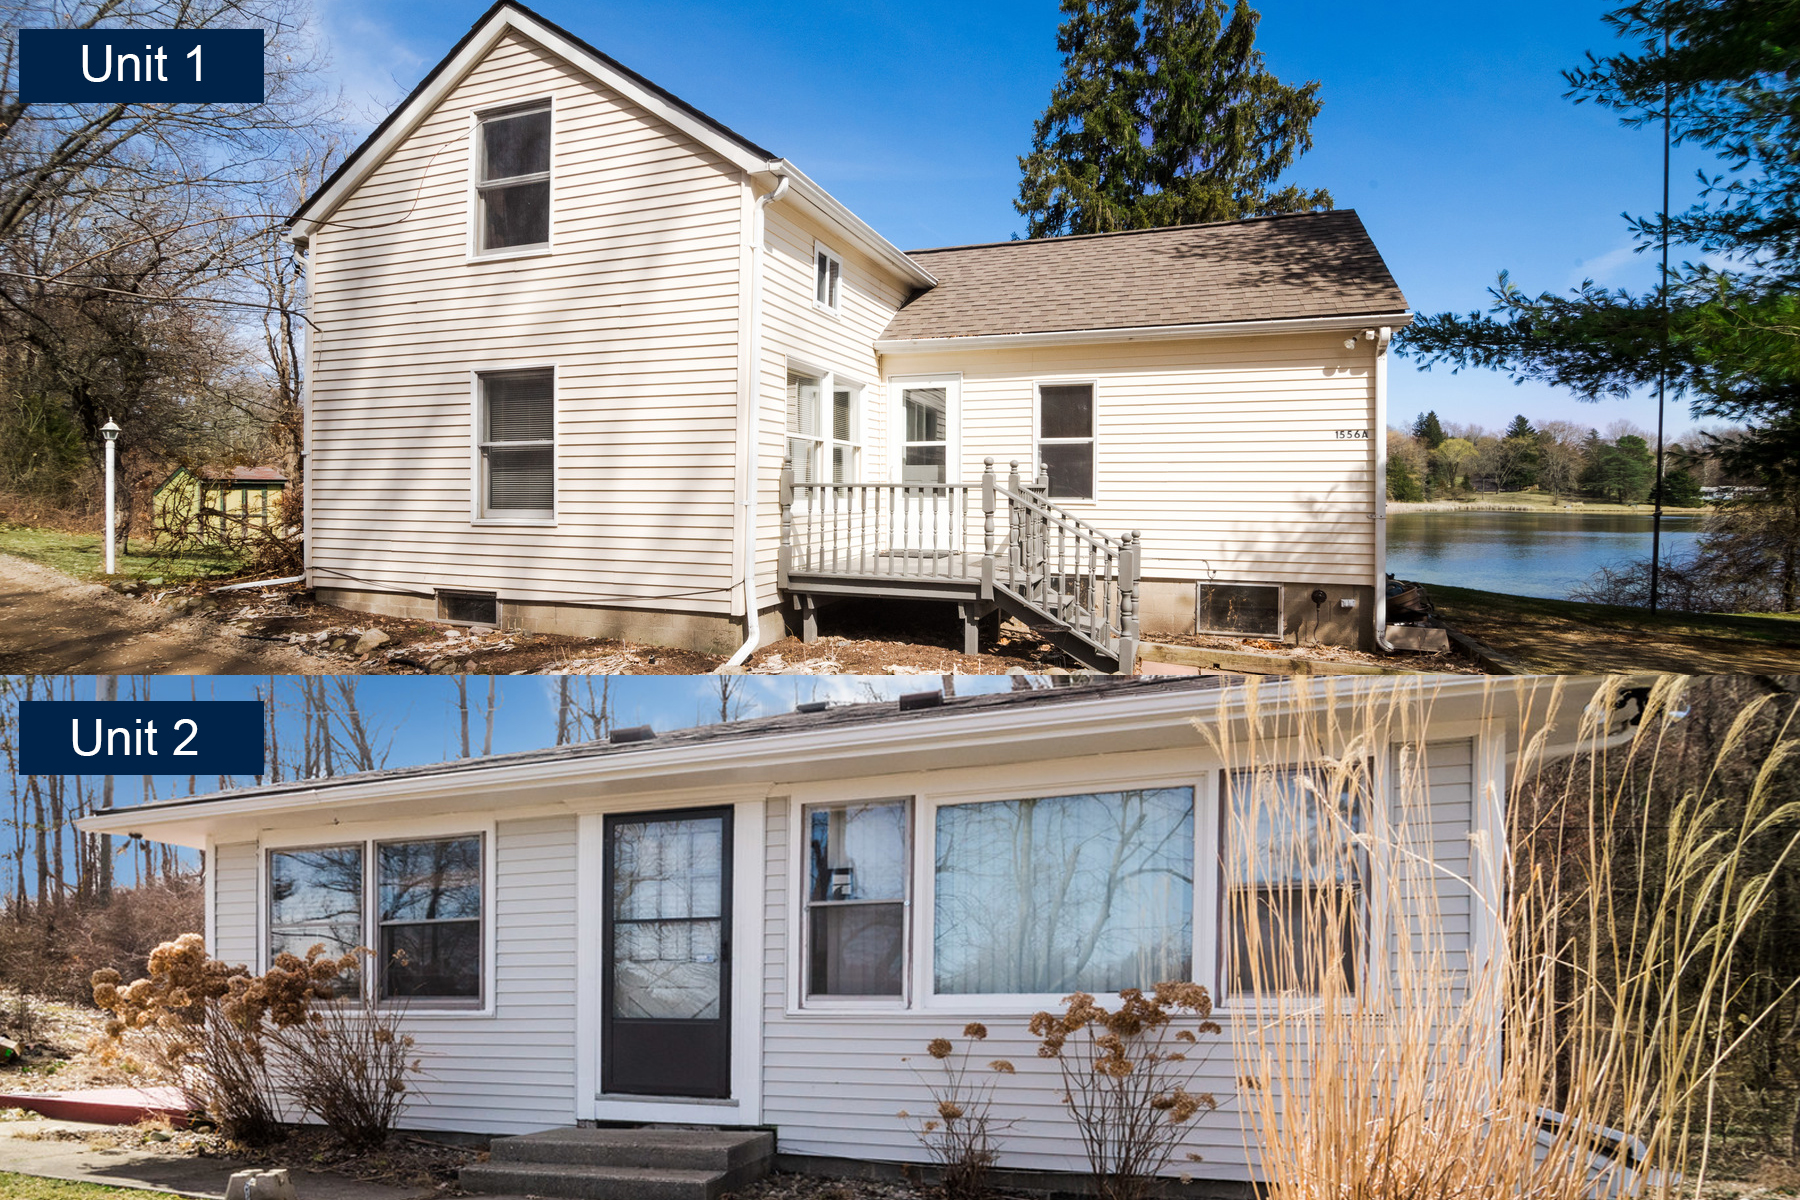 Single Family Homes for Sale at Addison Township 1556 Rochester Road Addison Township, Michigan 48367 United States